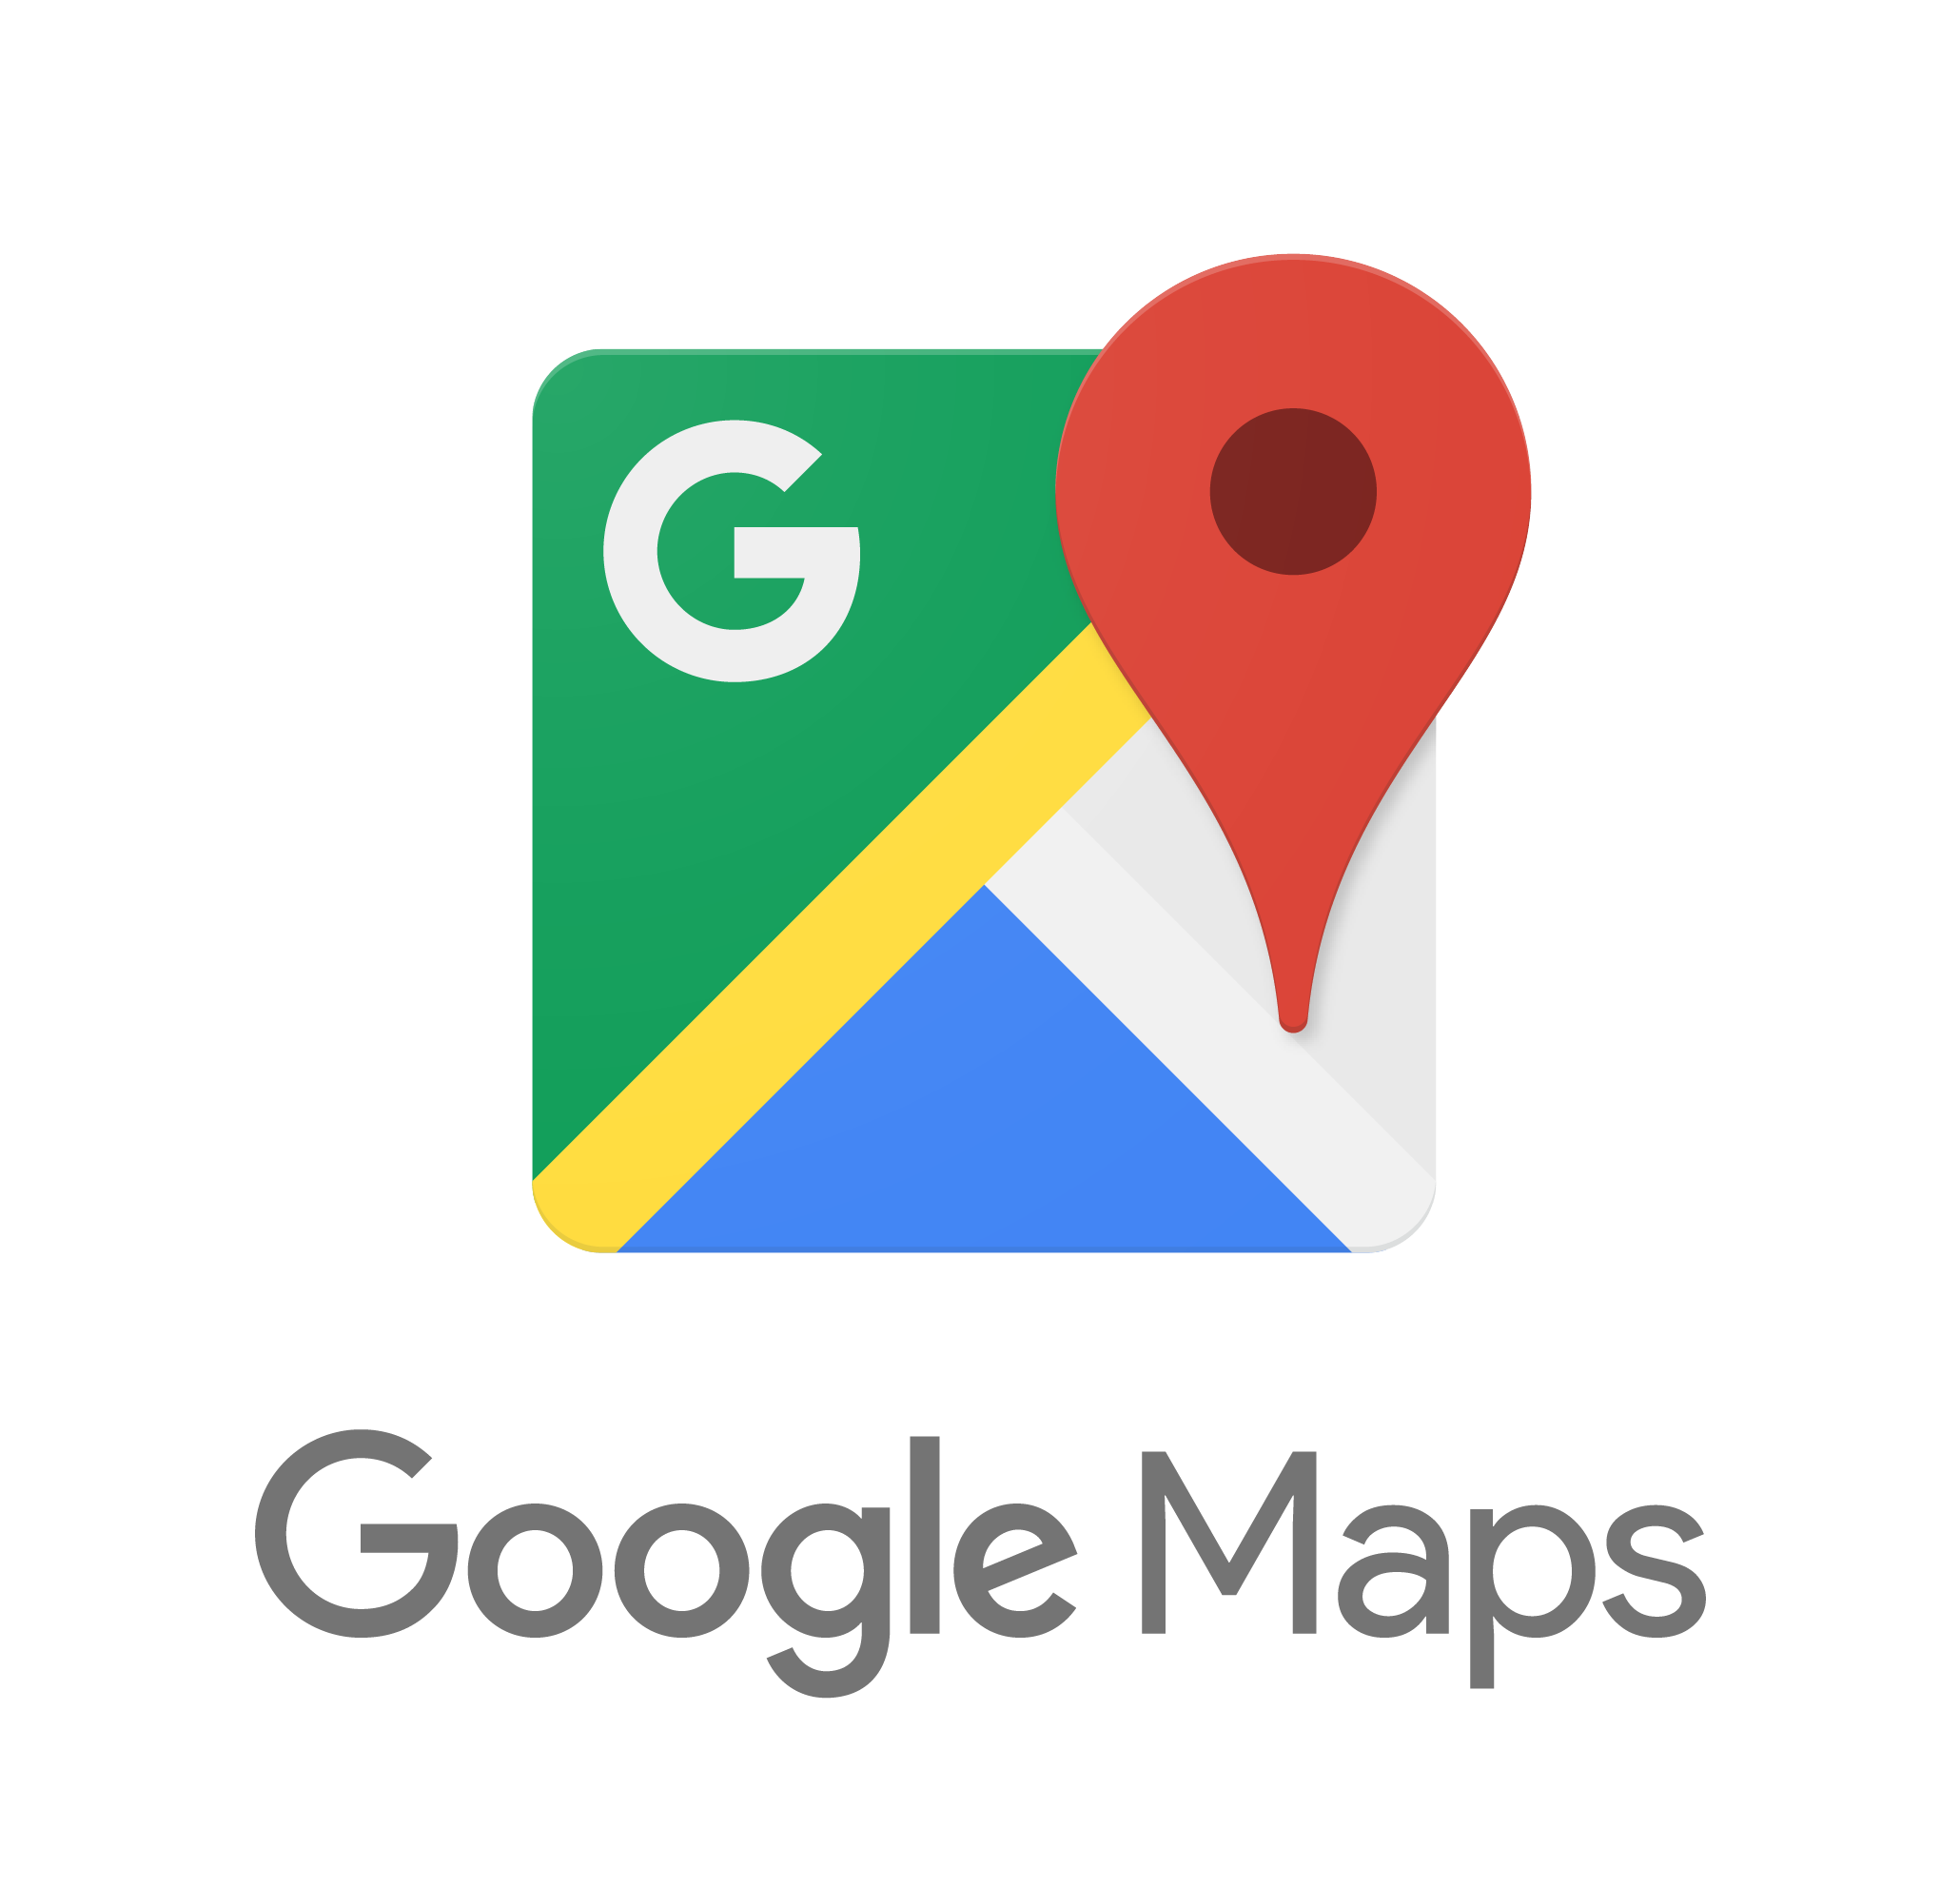 maps-logo-color-vertical-with-icon-png